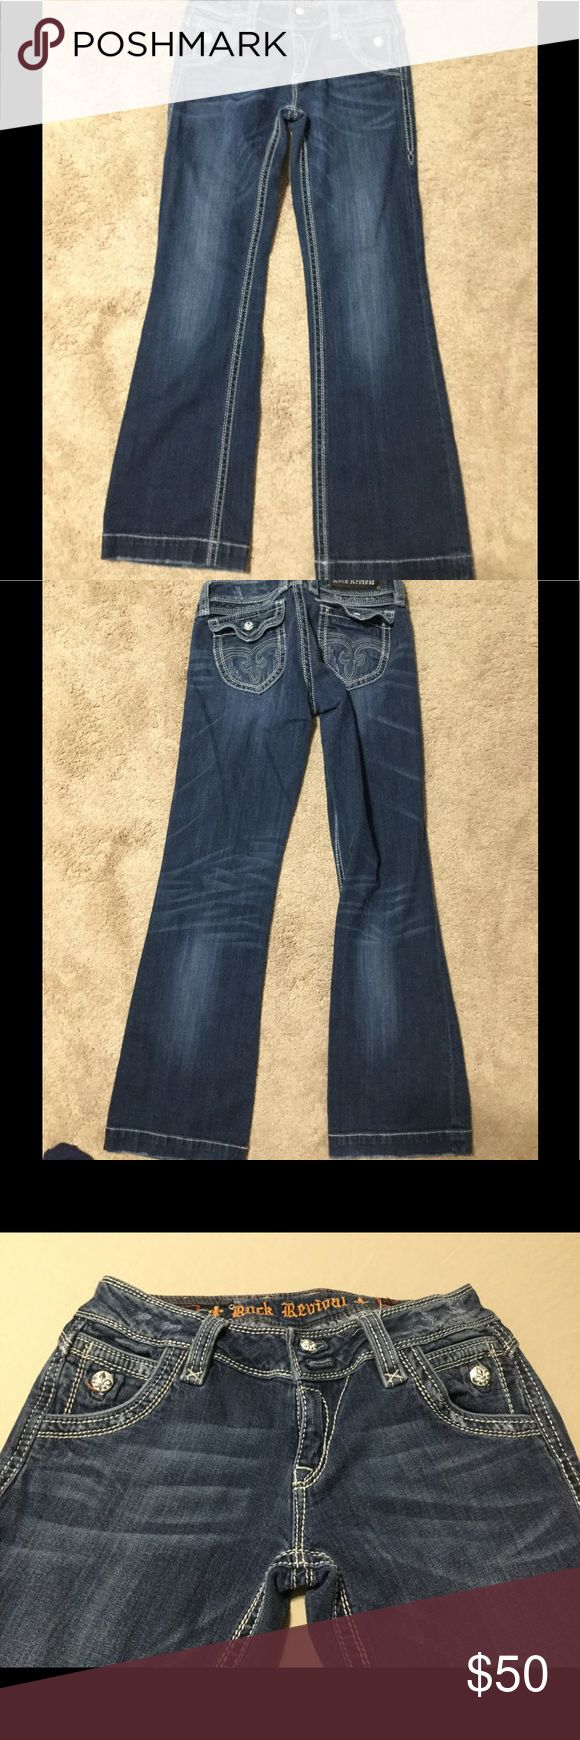 "Rock Revival Elizabeth Wide Leg Women's Jeans W29 .Rock Revival Elizabeth Wide Leg Women's Jeans Waist 29 Length 31"". Pre owned but in great shape. Rock Revival Jeans Flare & Wide Leg"